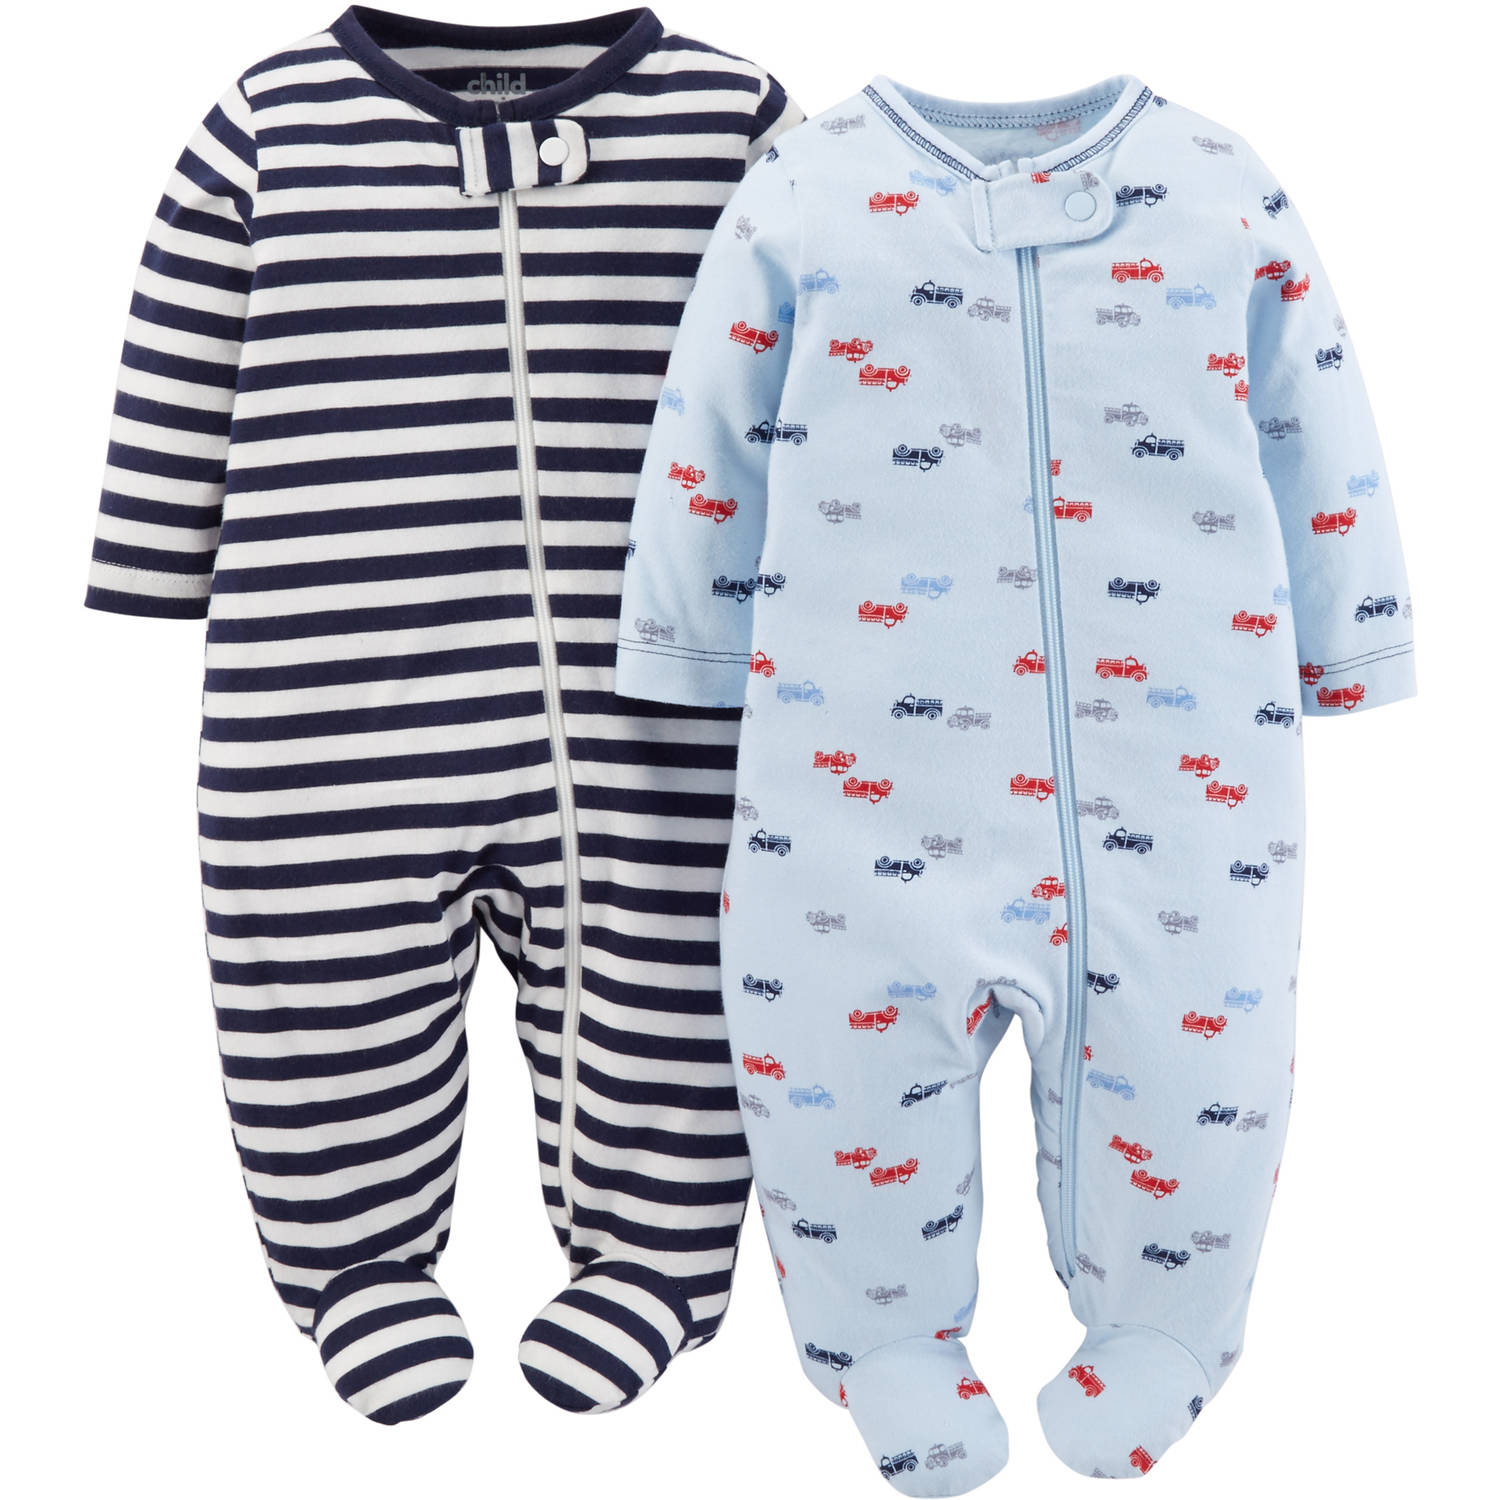 Child Of Mine Made By Carter's Newborn Baby Boy Sleep N Play, 2 Pack